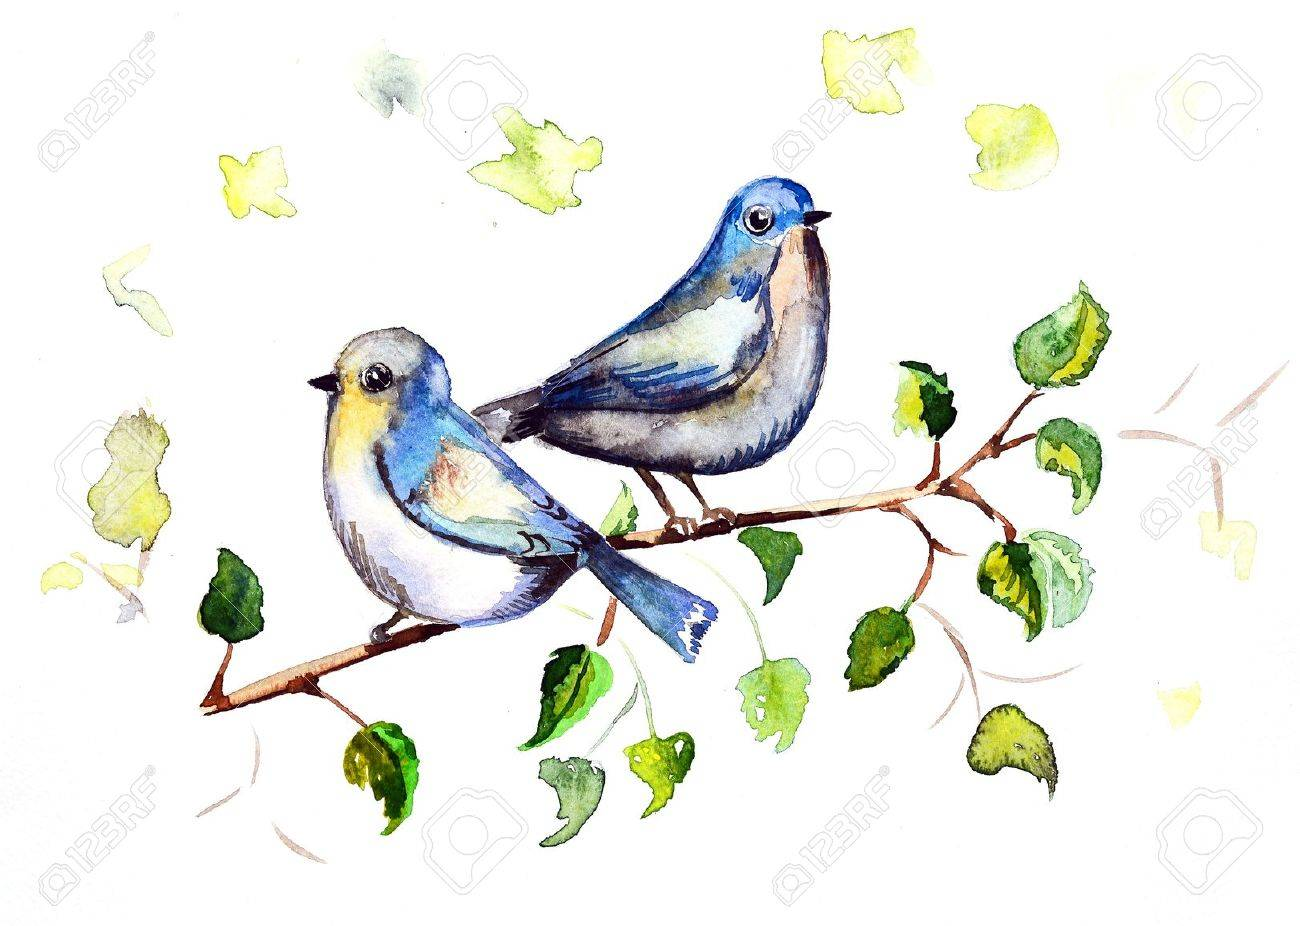 1300x926 Watercolor Drawing Birds Stock Photo, Picture And Royalty Free